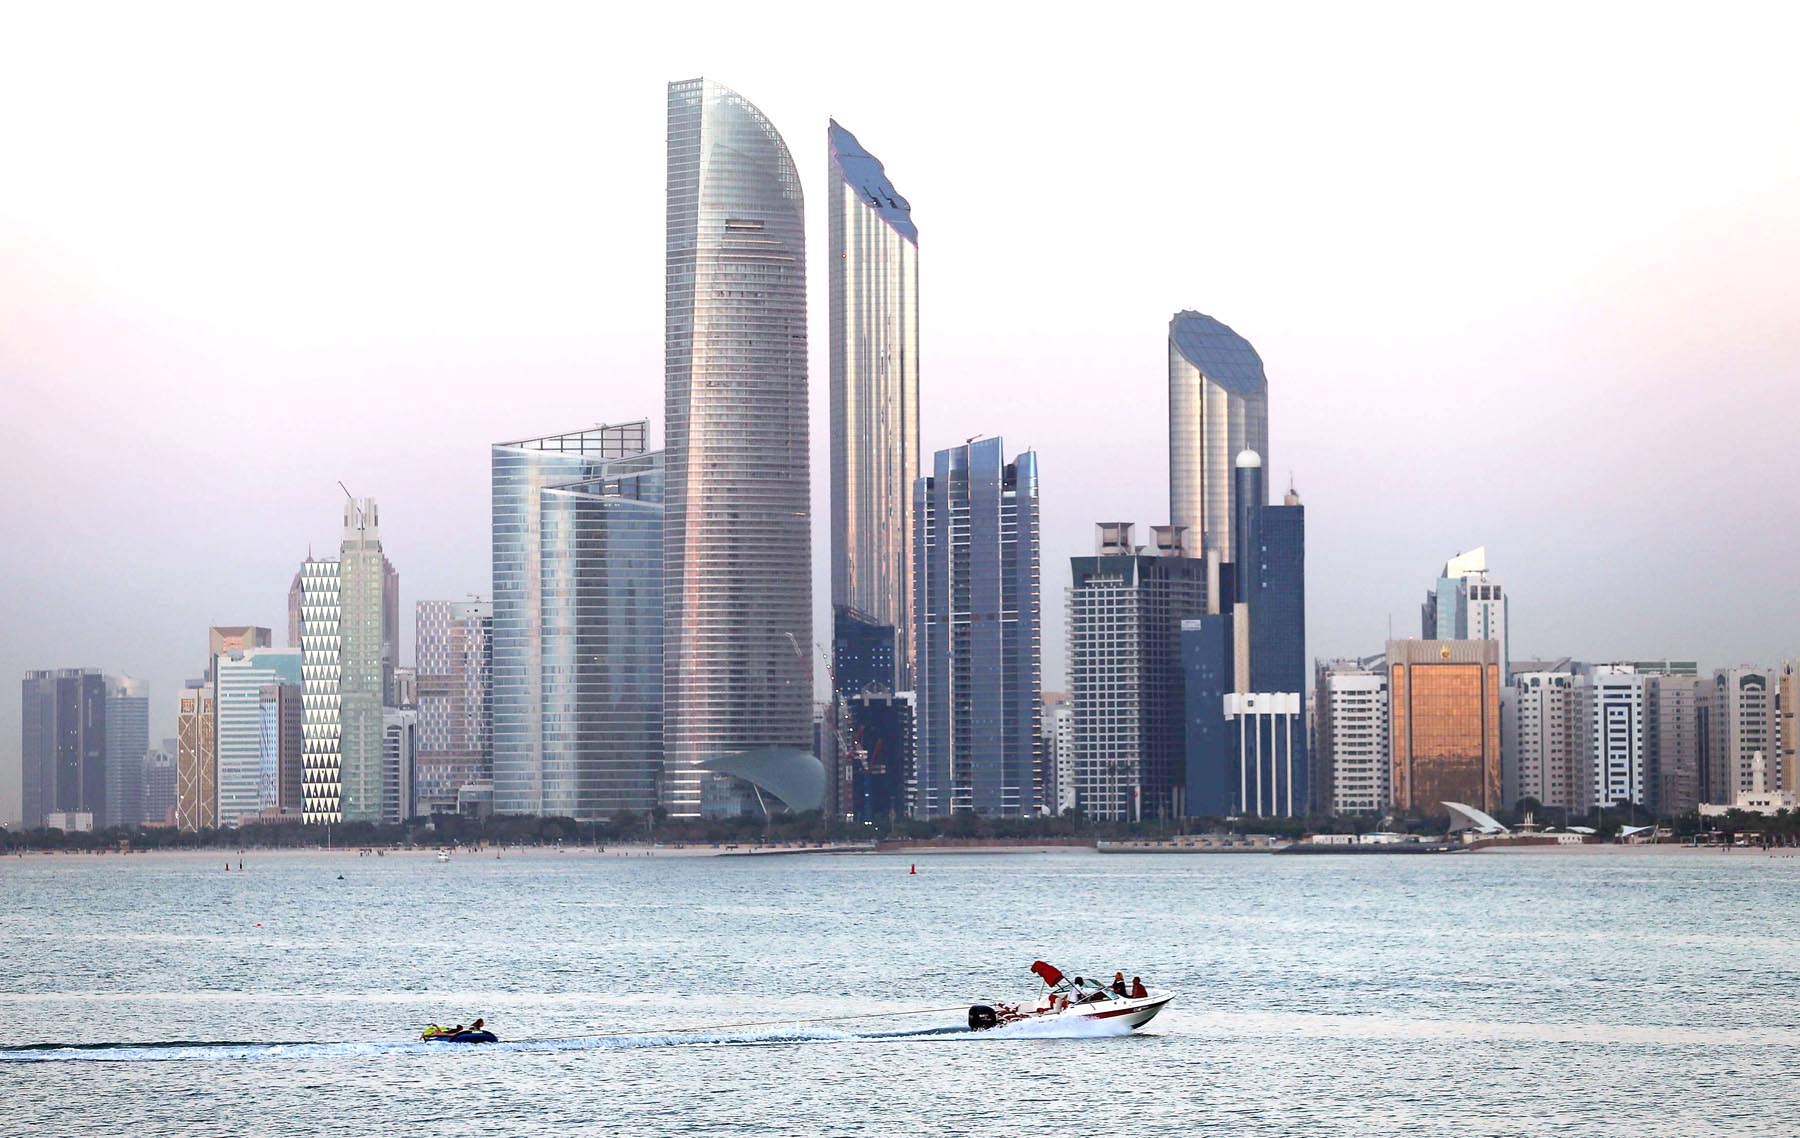 A general view of Abu Dhabi. (Reuters)